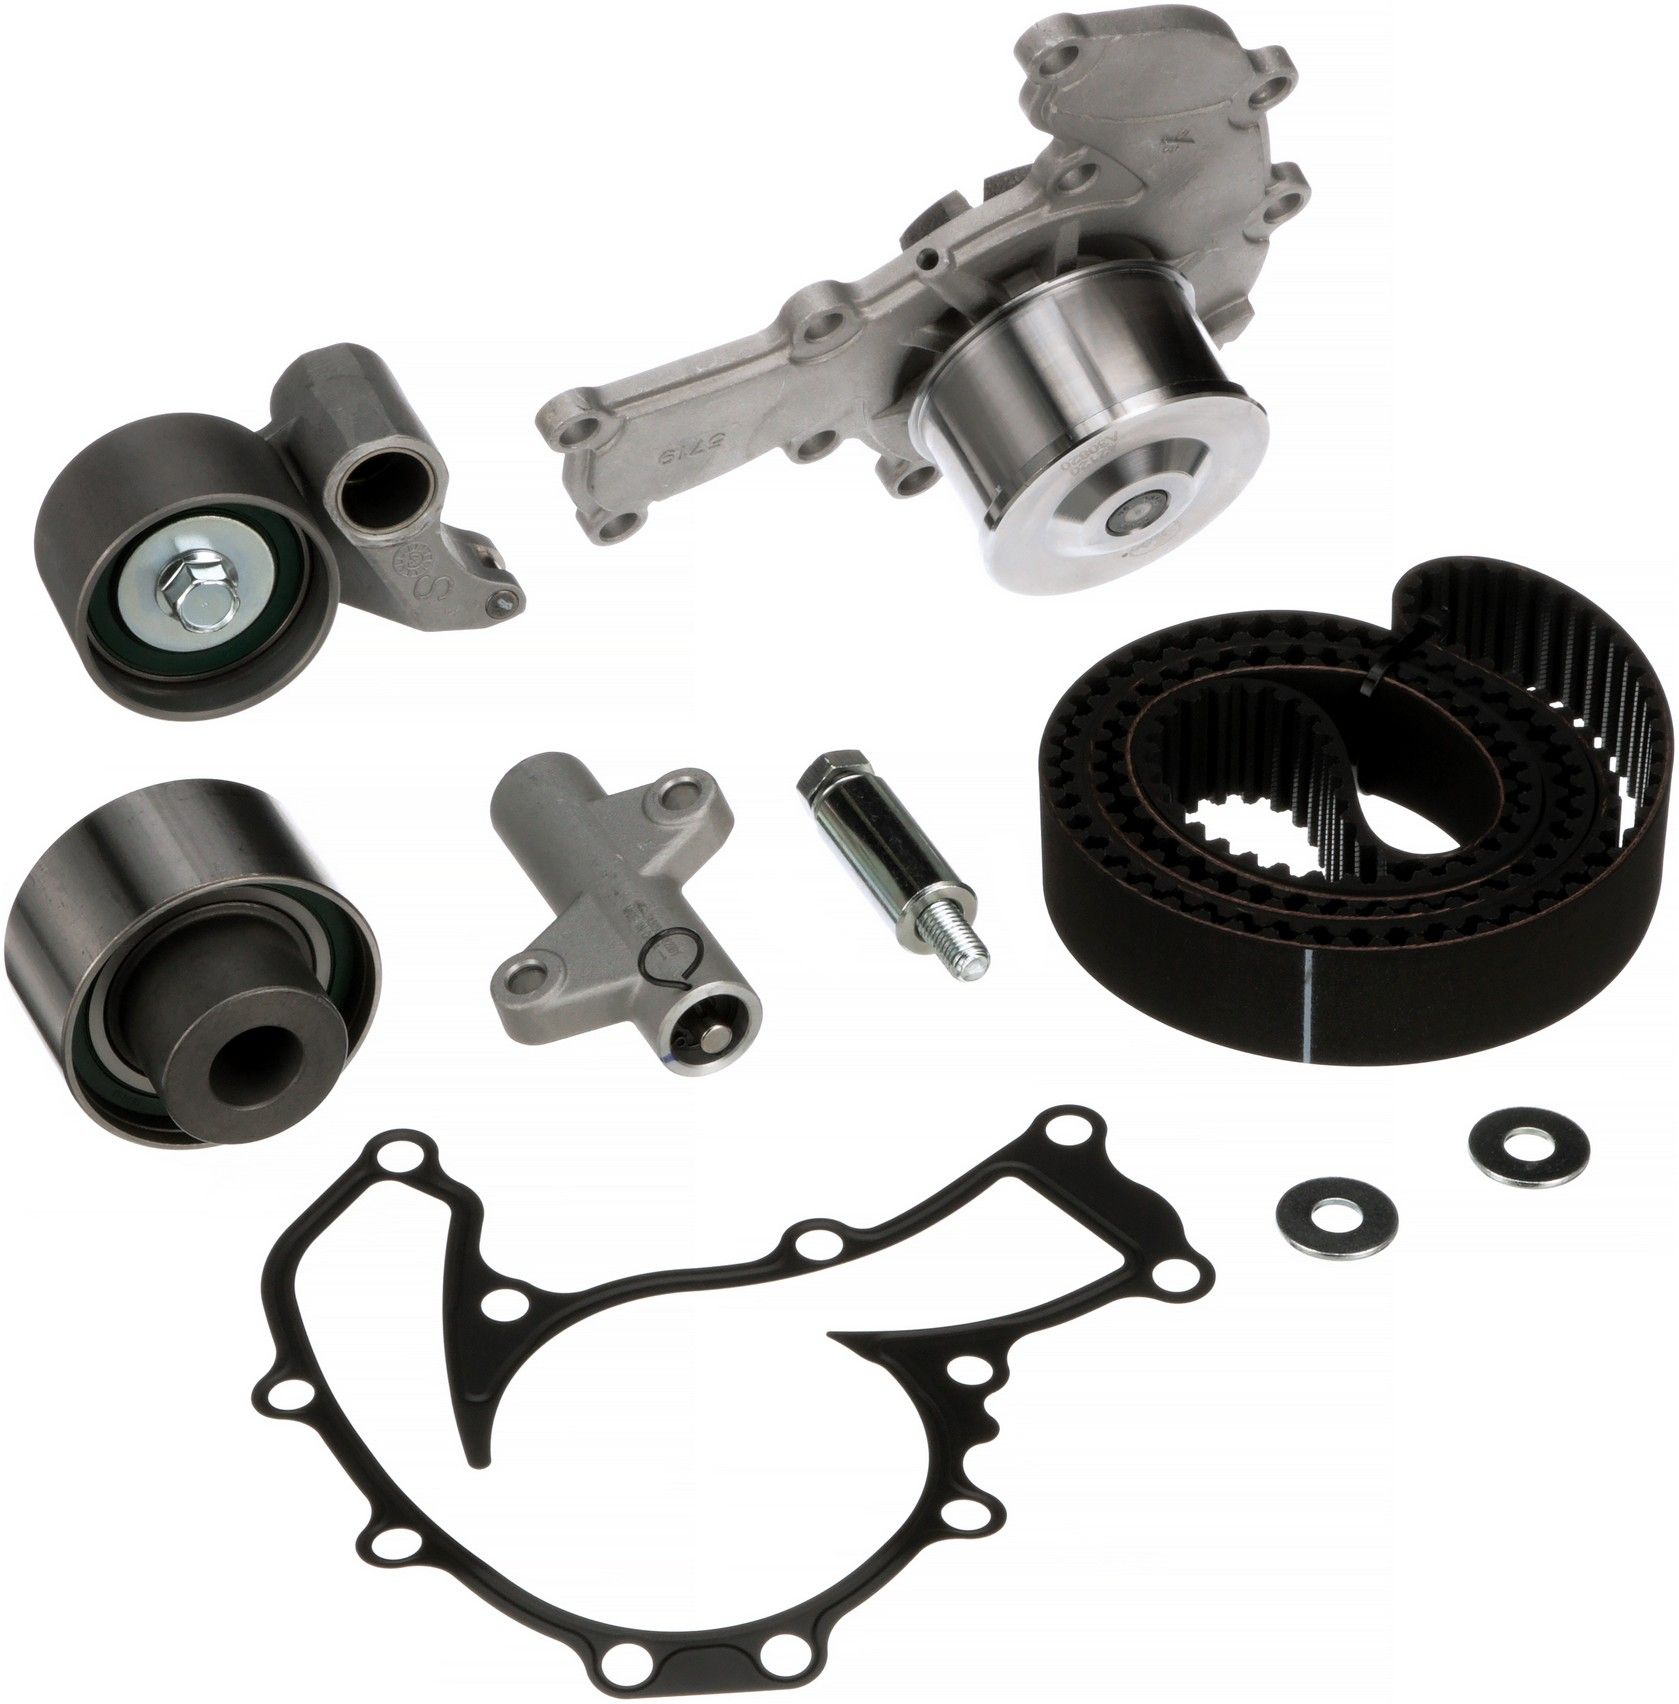 Honda Prelude Engine Timing Belt Kit With Water Pump Replacement 1992 Balancer 1996 4 Cyl 23l Gates Tckwp216 Interference Application